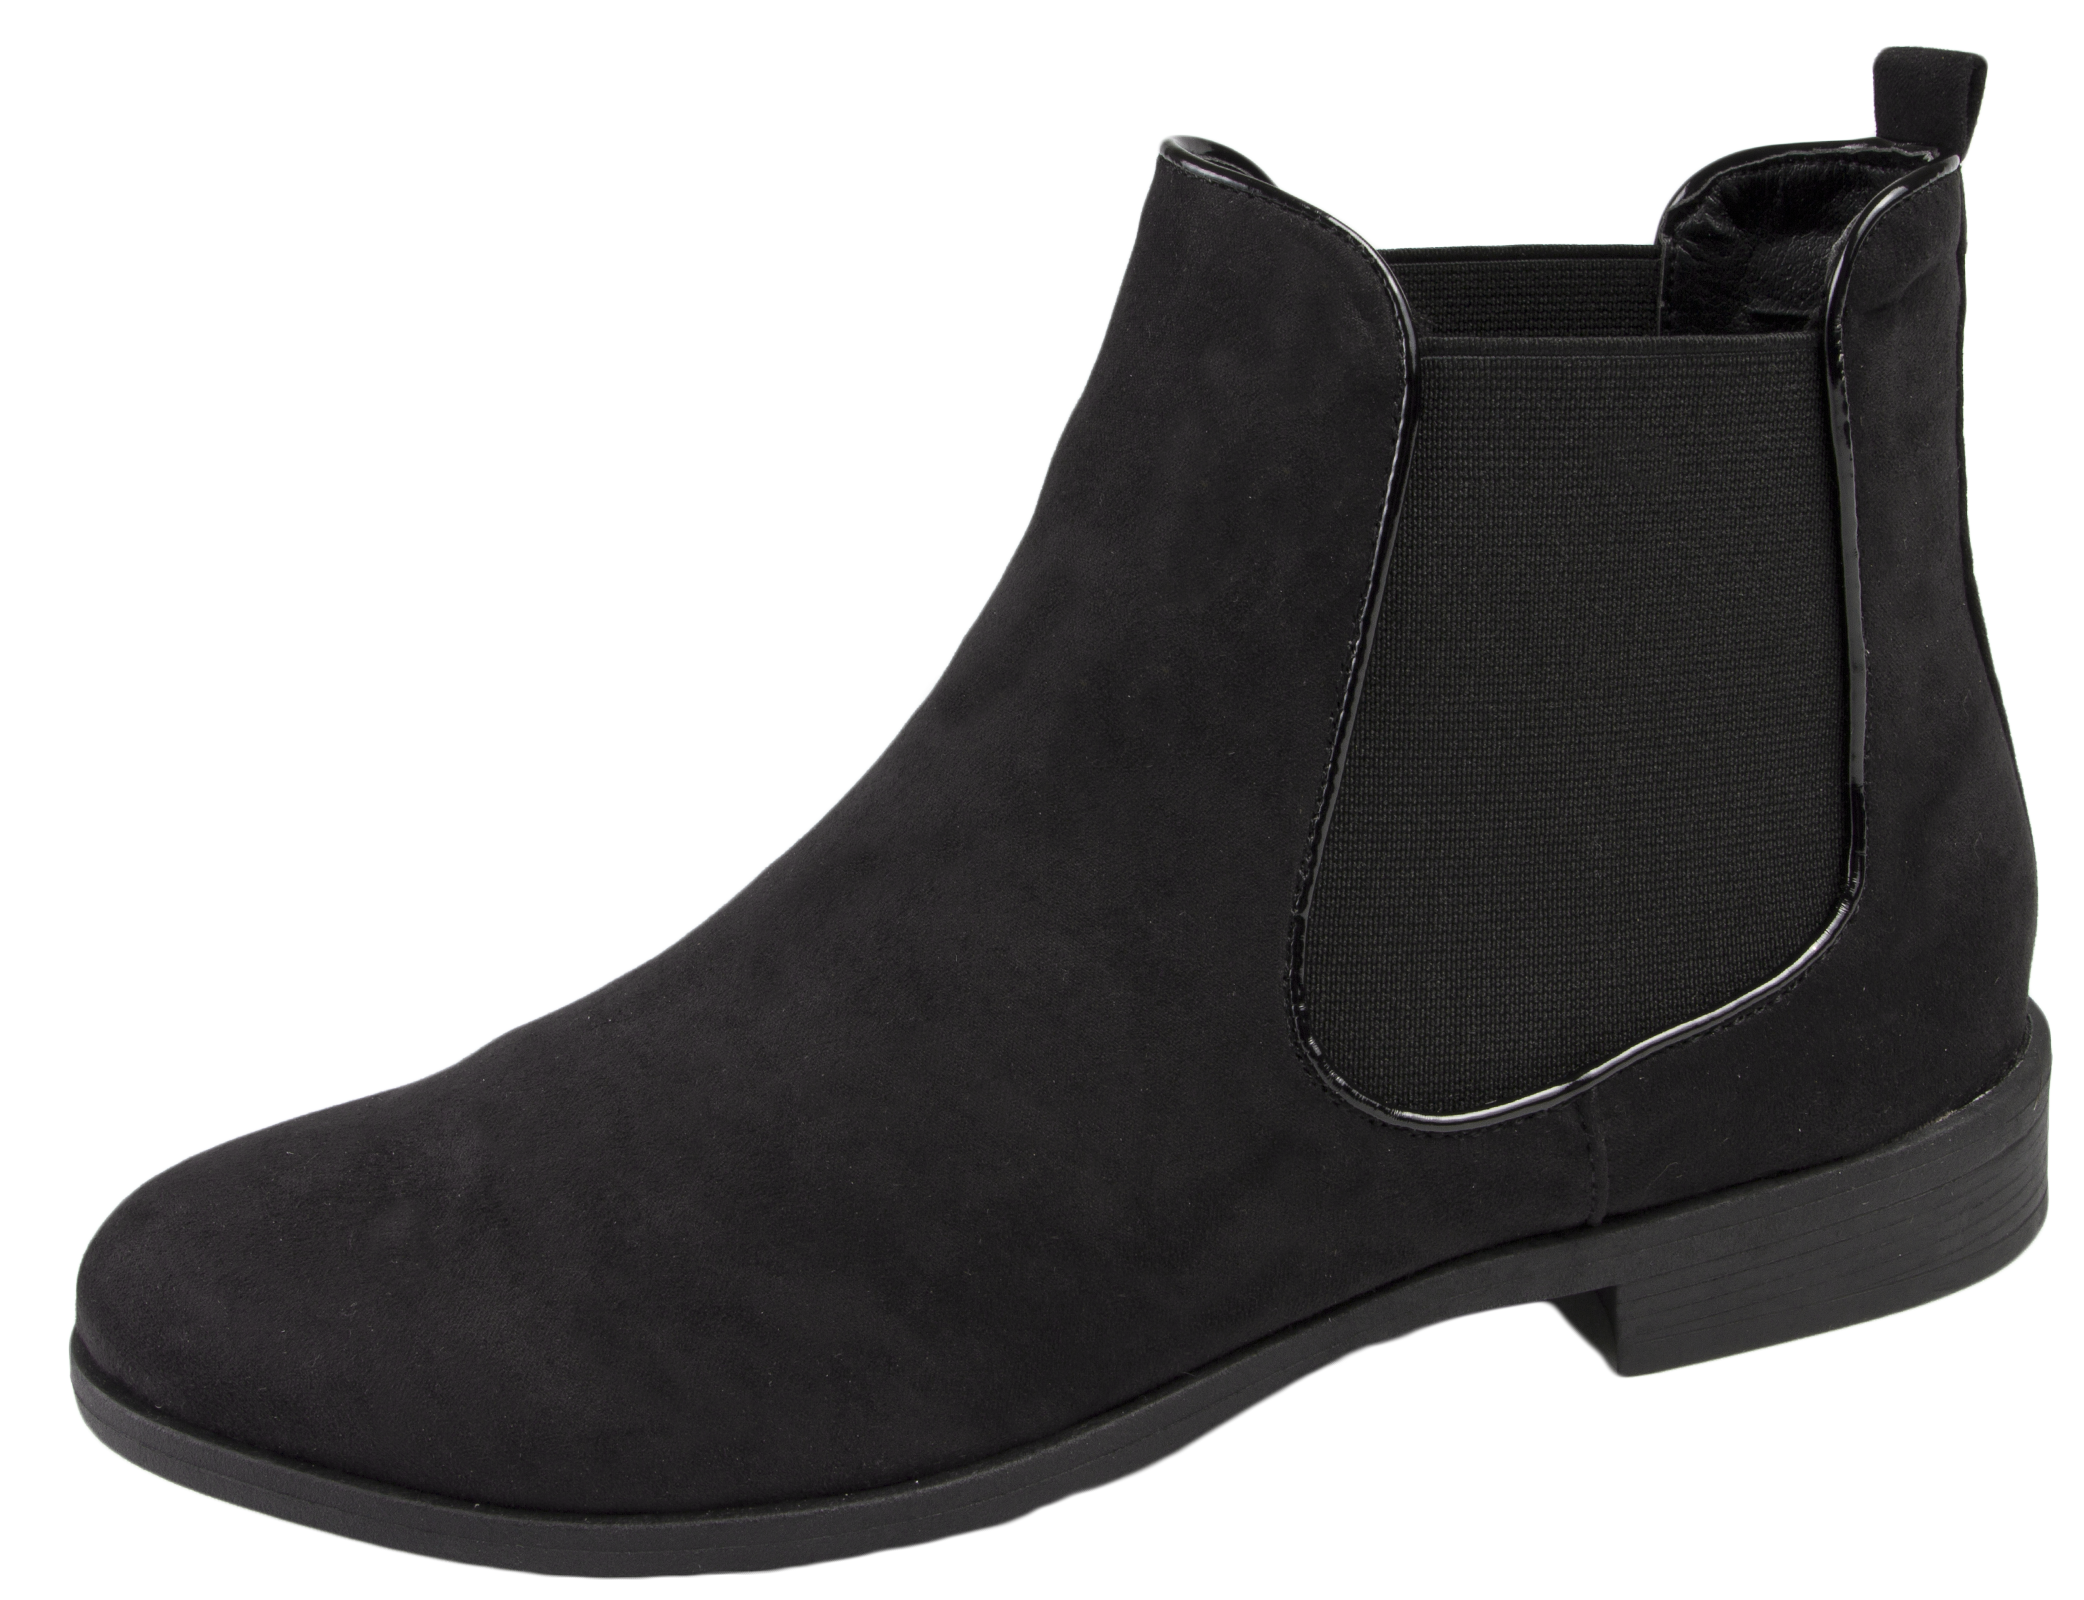 Elegant Womens Ladies Winter Real Leather Flat Gusset Pull On Ankle Chelsea Boots Size | EBay